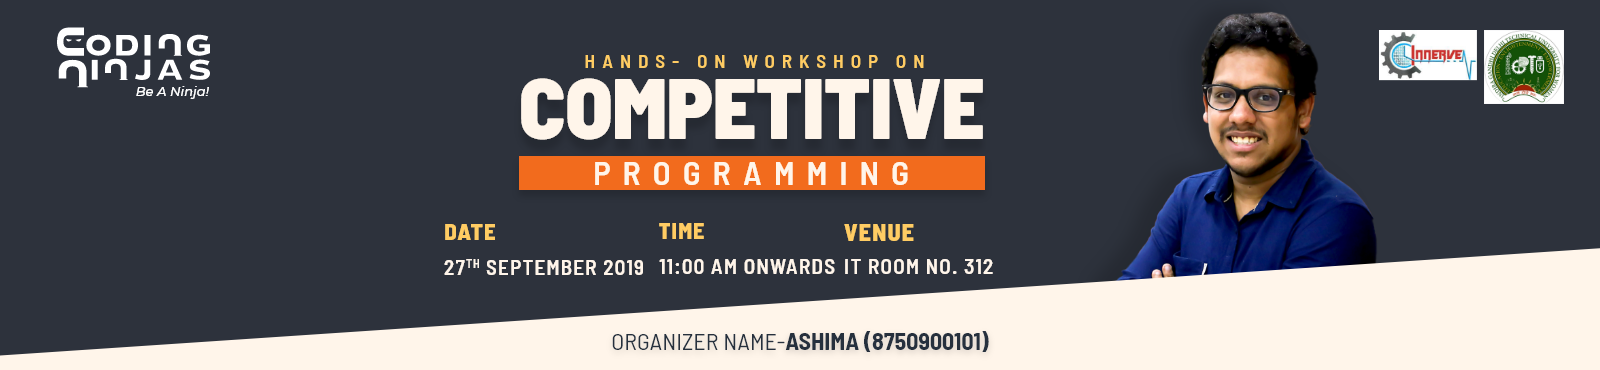 Competitive Hands on Session - IGDTUW